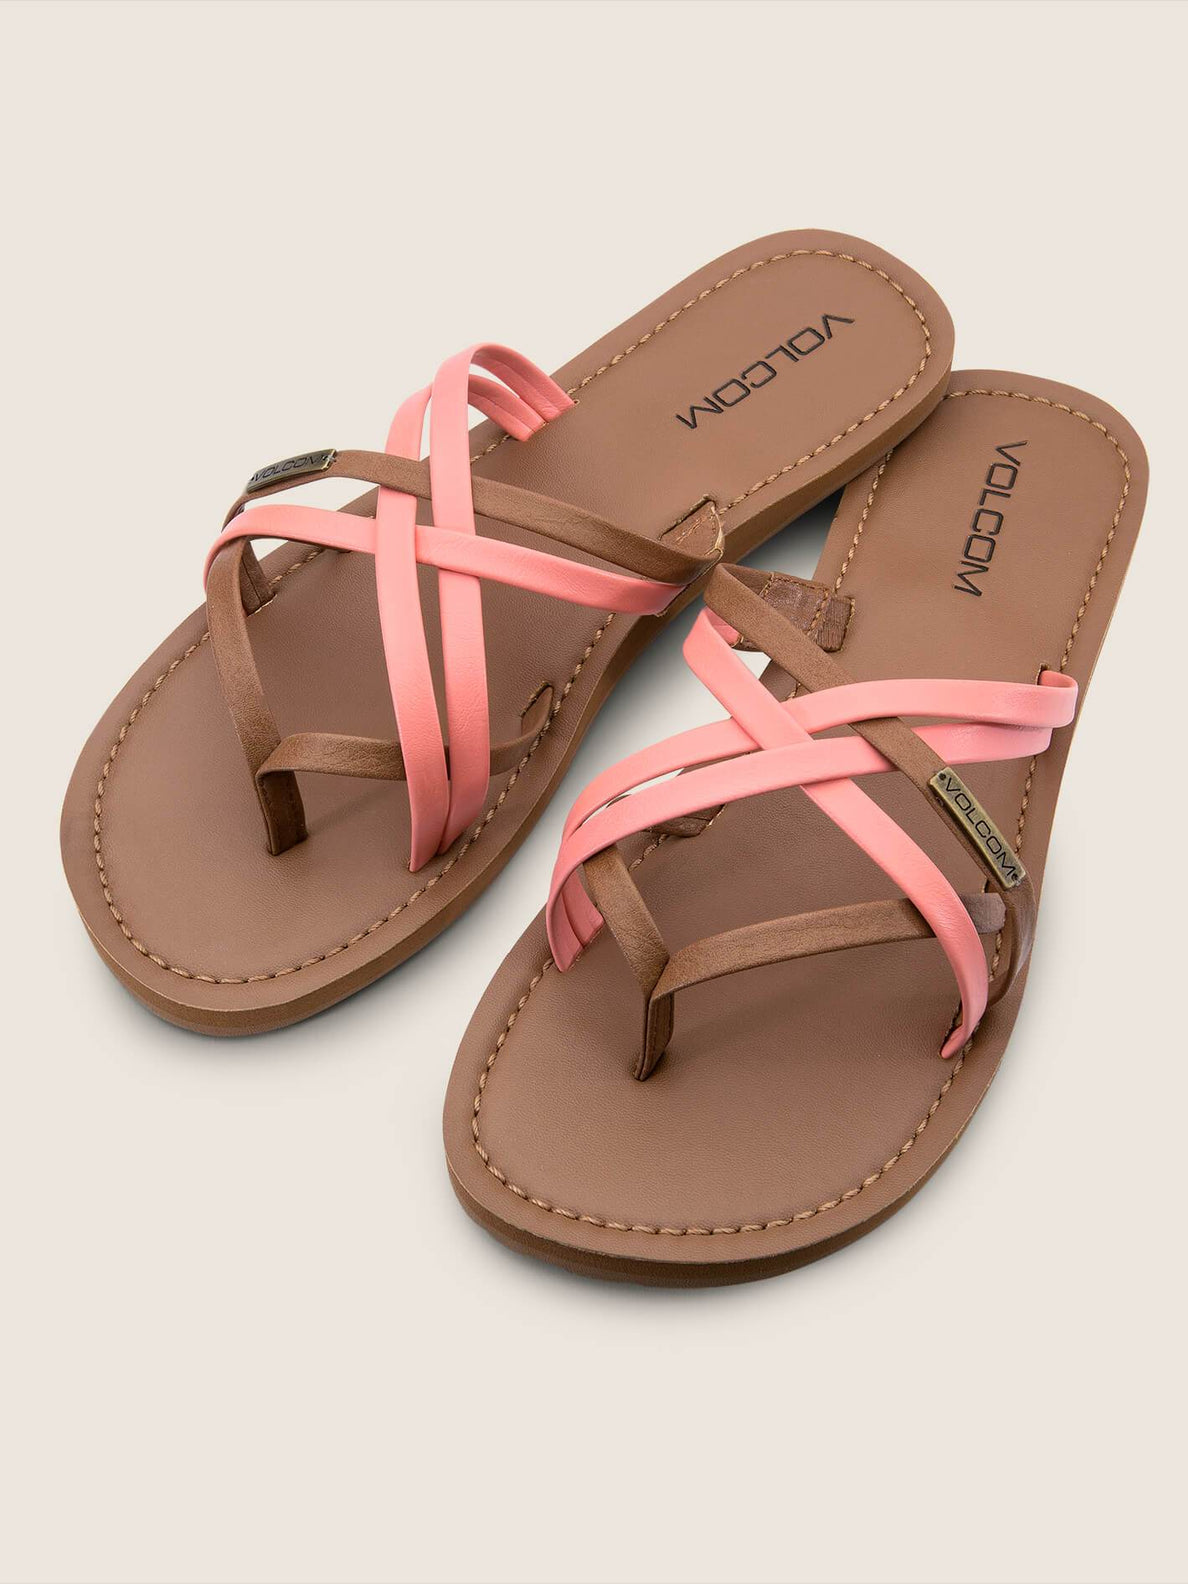 Strap Happy Sandals In Coral, Front View